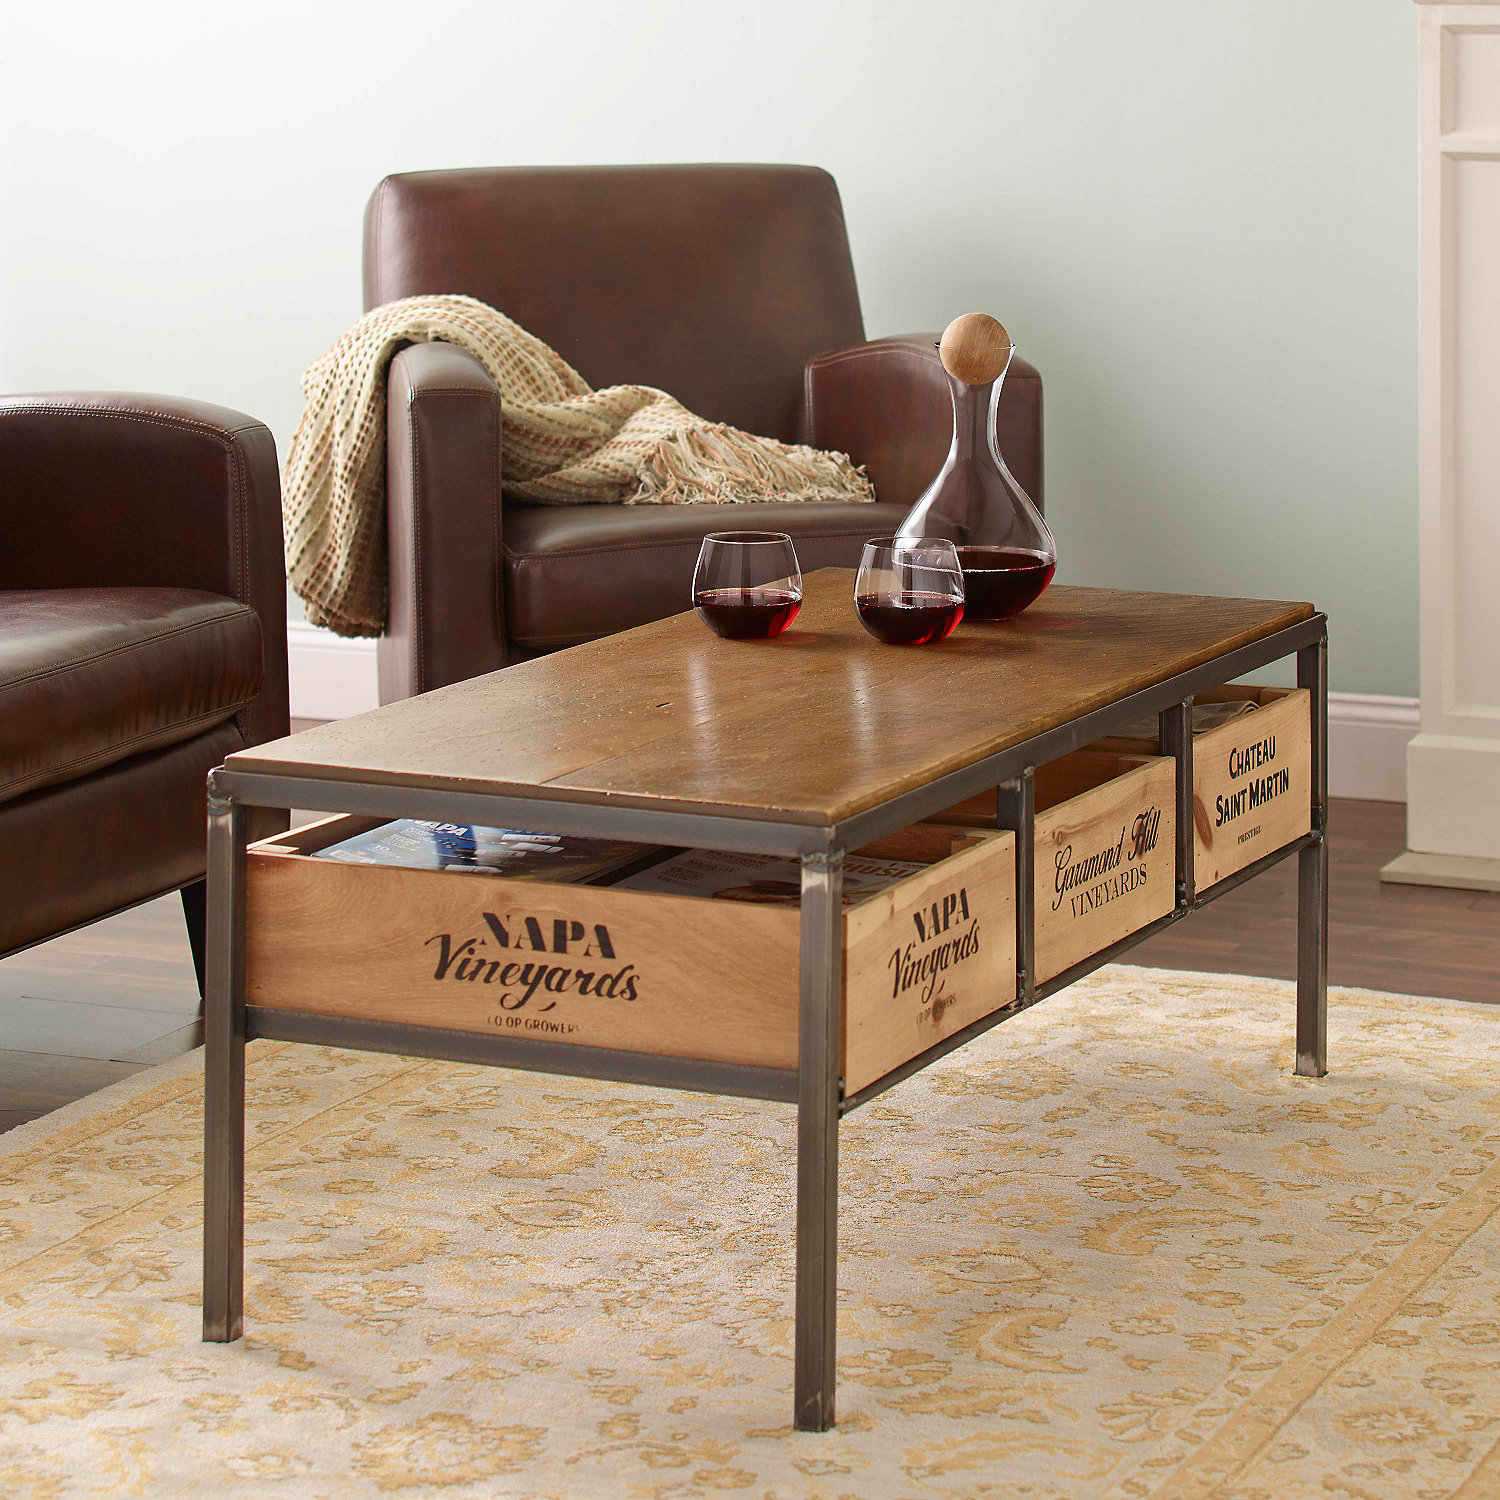 Vino Vintage Coffee Table - Wine Enthusiast